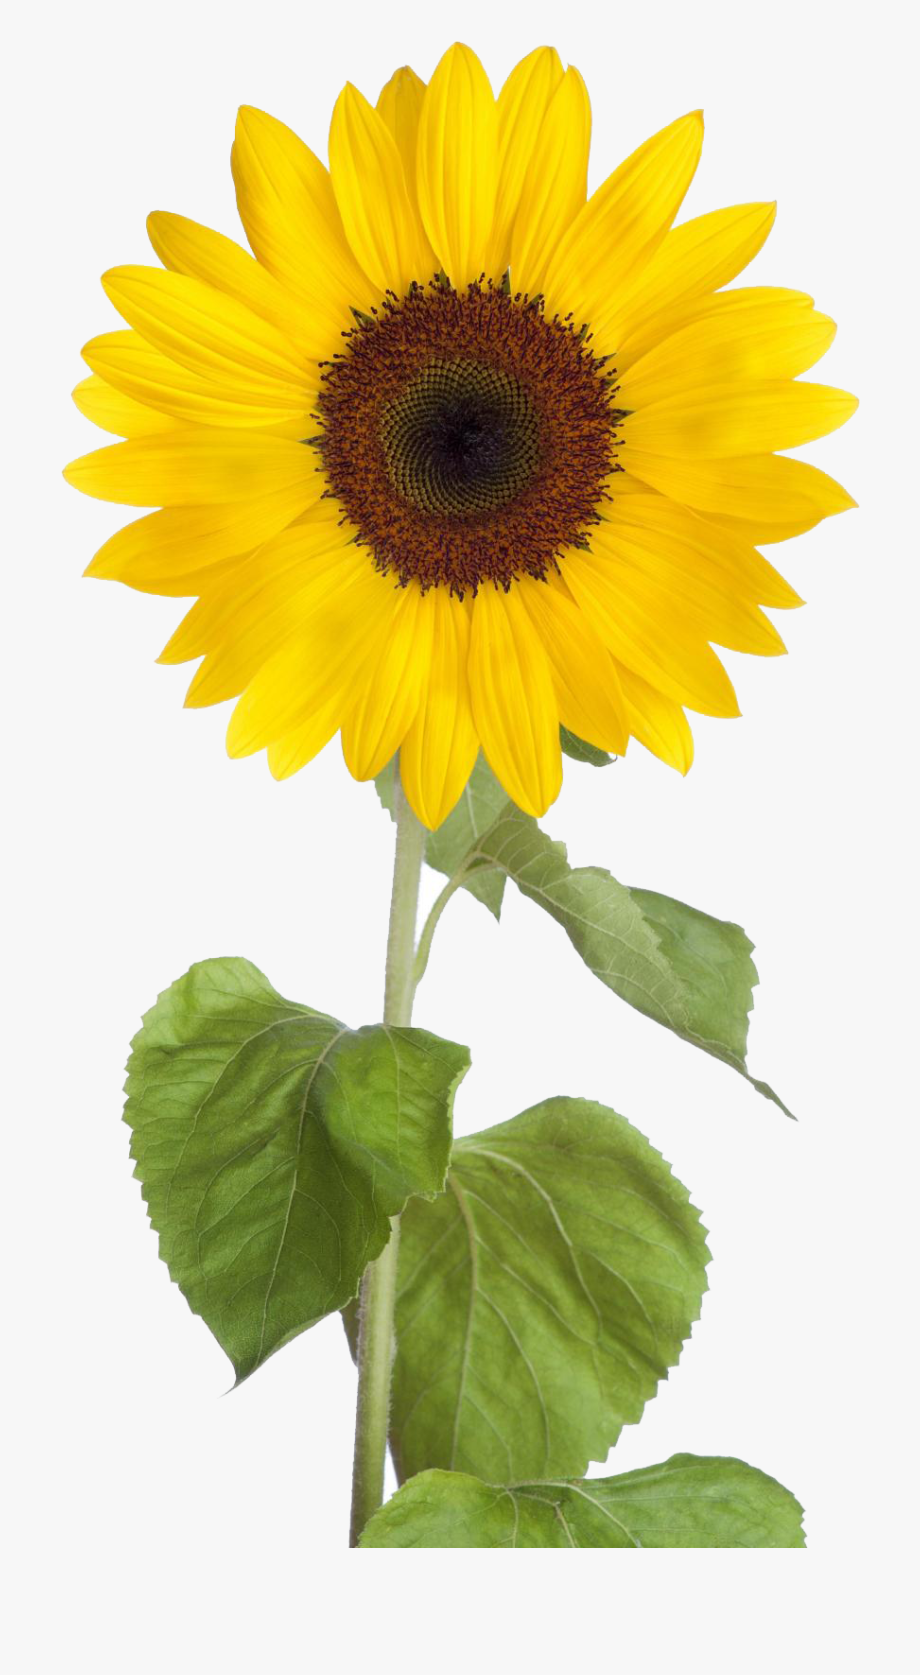 Sunflower Free Sunflower Clip Art Images Black And.